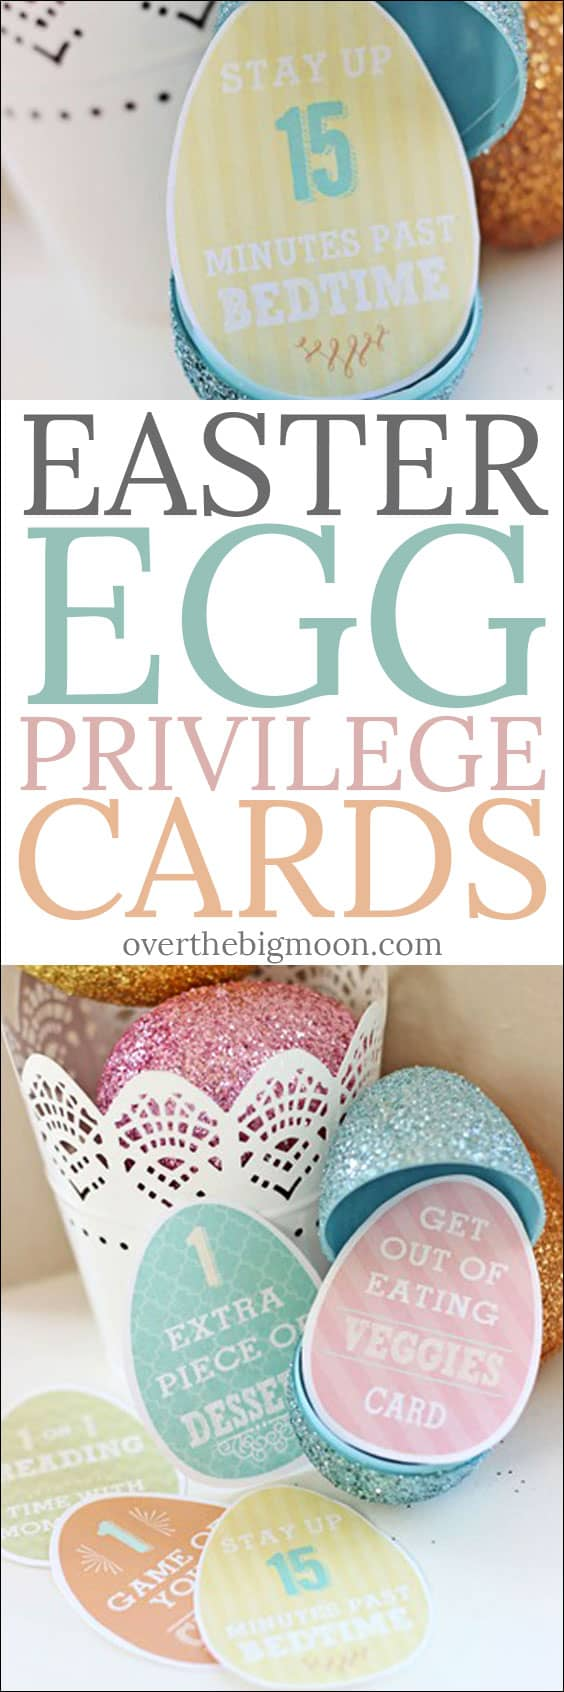 Easter Egg Privilege Cards - the perfect non-candy Easter Egg filler! Kids of all ages will love these! From overthebigmoon.com!